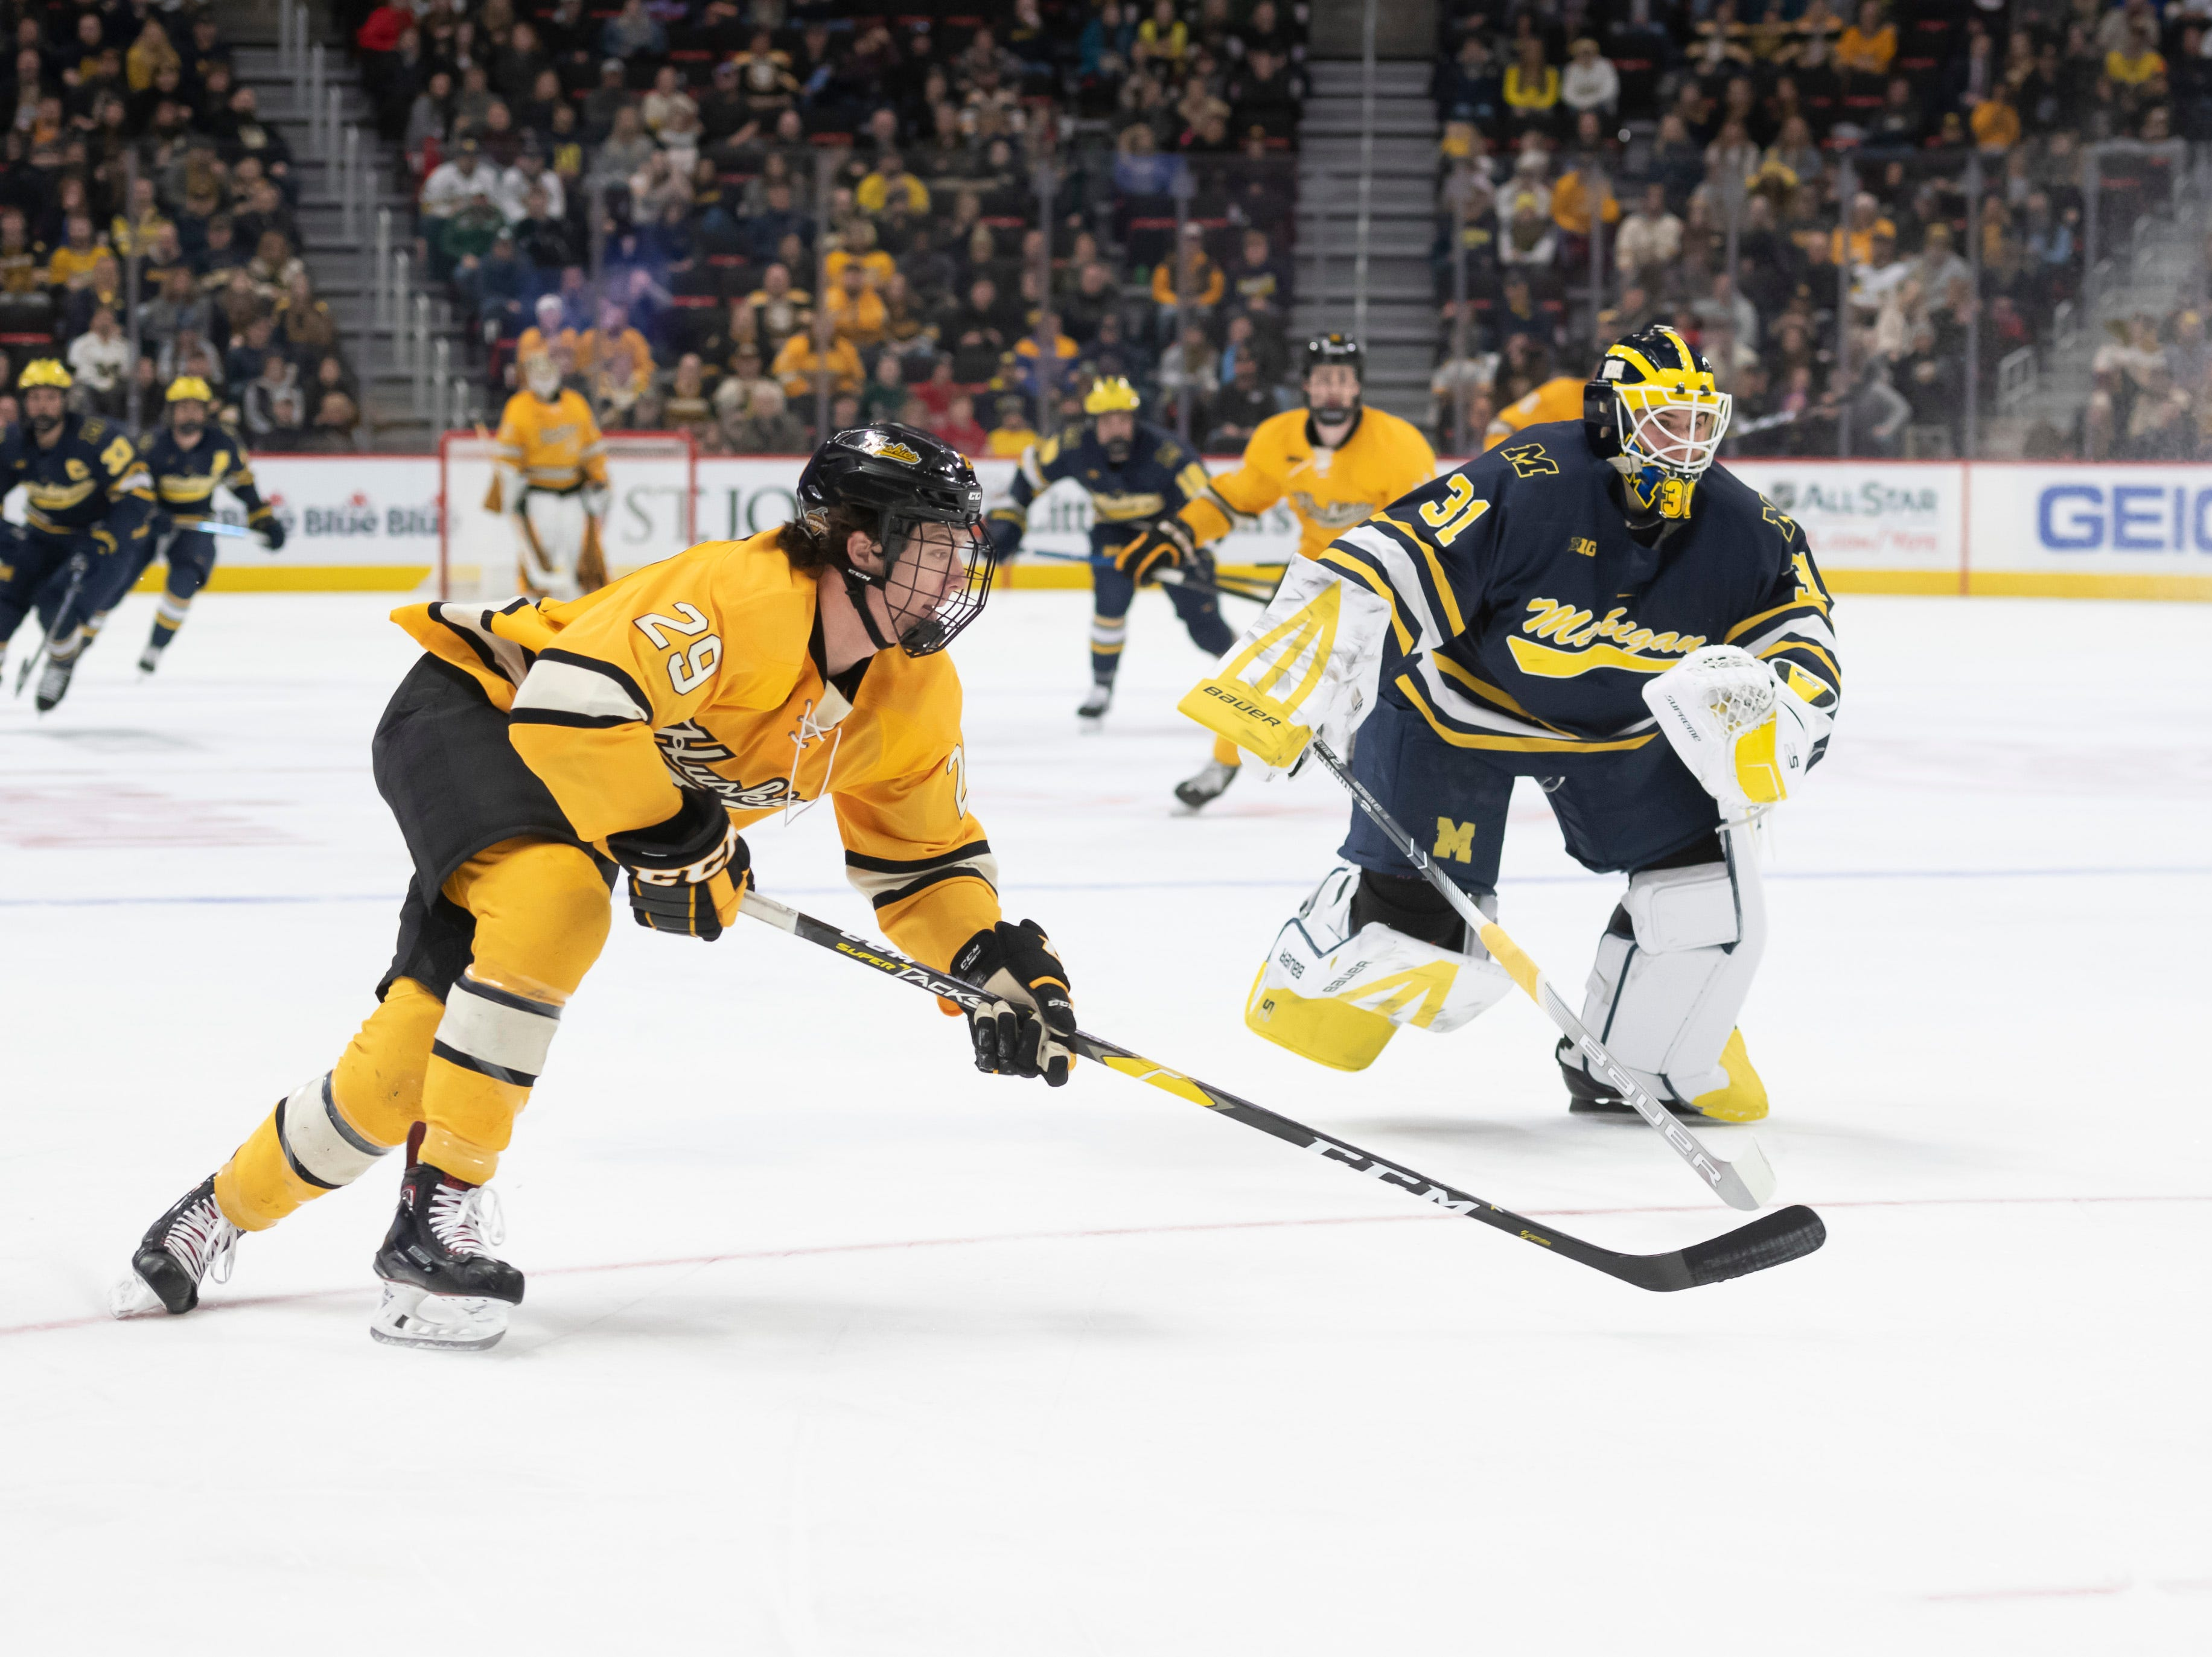 Michigan goaltender Strauss Mann is way out of the net while trying to keep Michigan Tech forward Alec Broetzman from scoring in the first period.